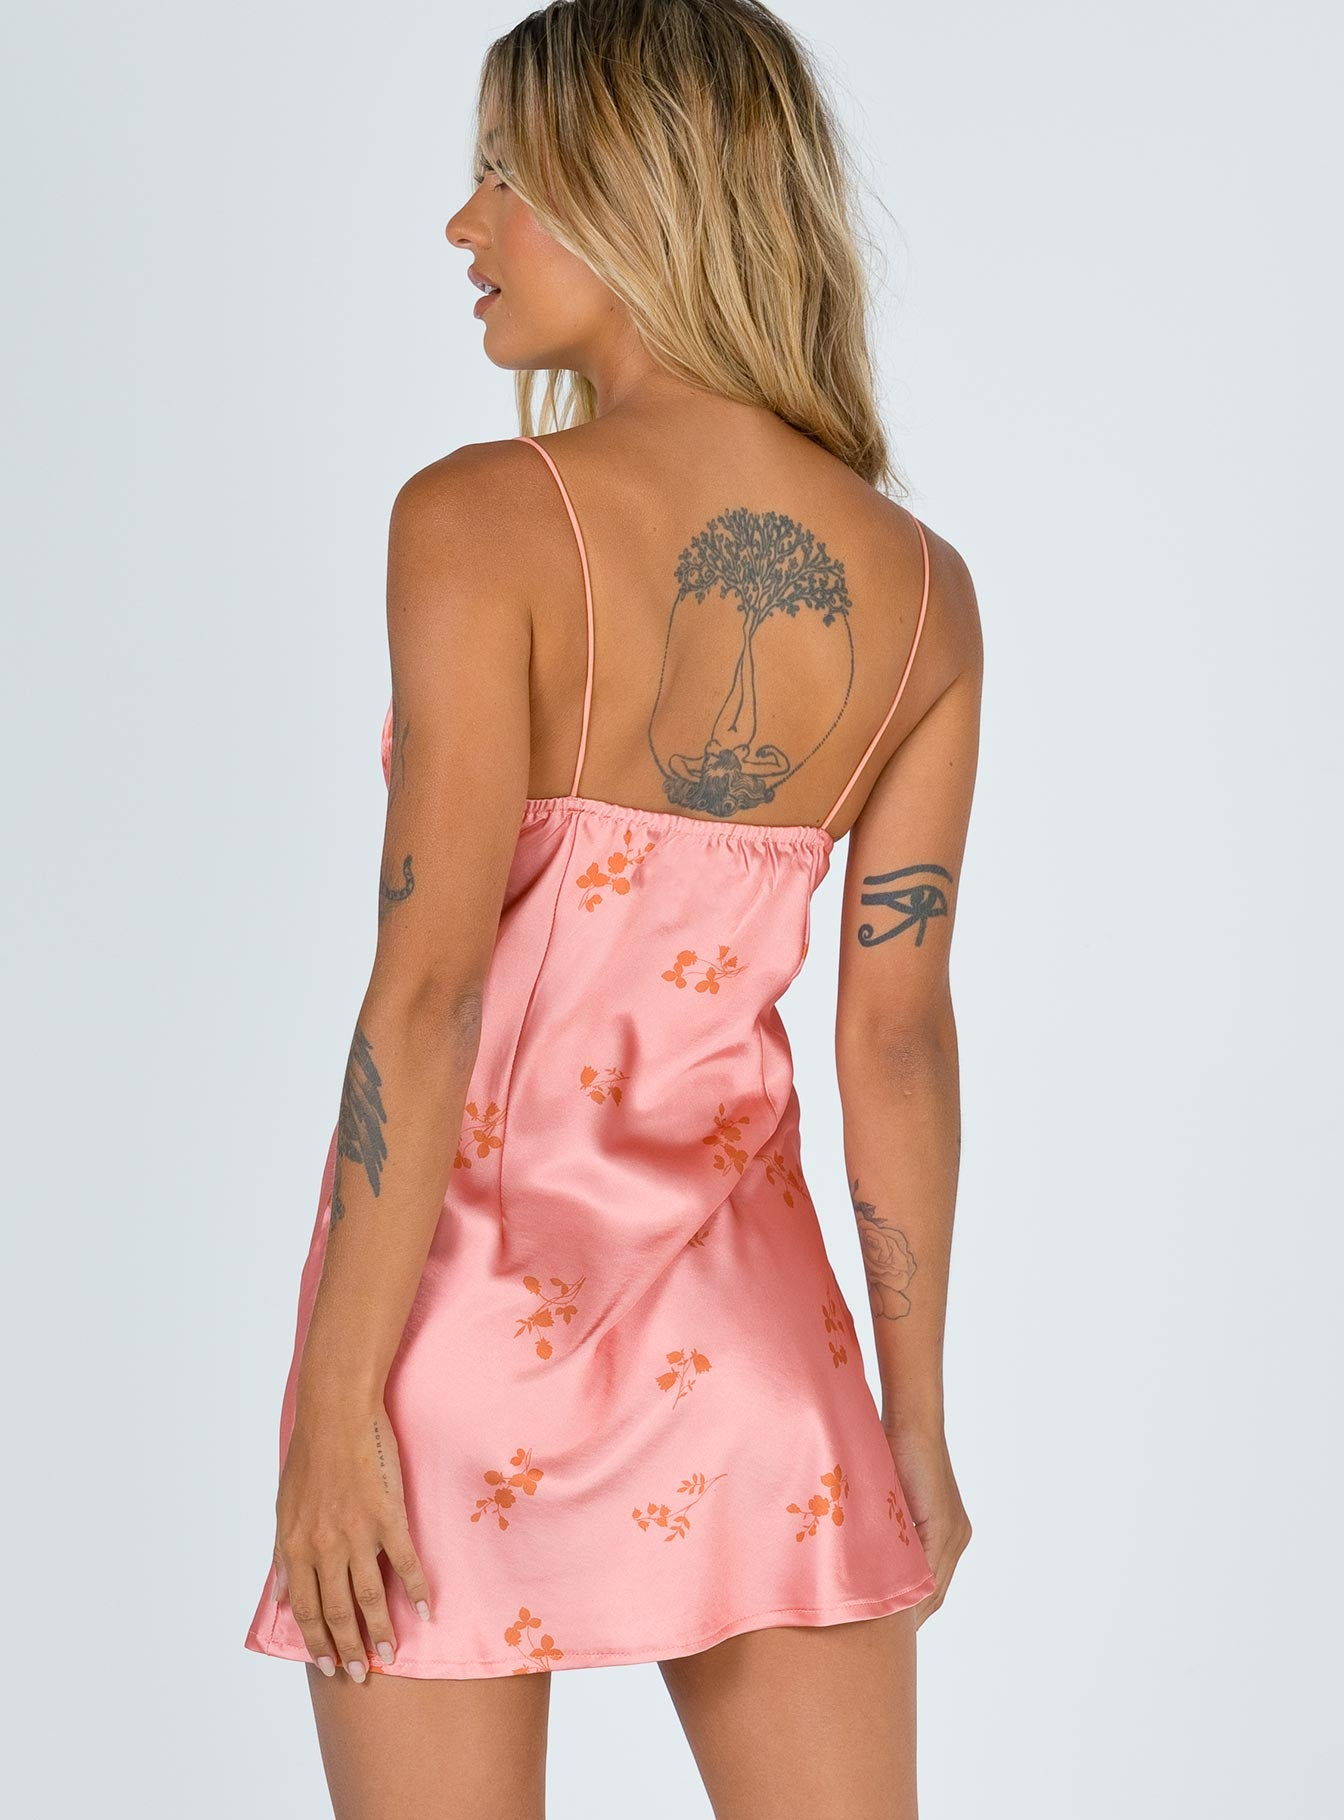 Stargazing Mini Dress Pink Floral